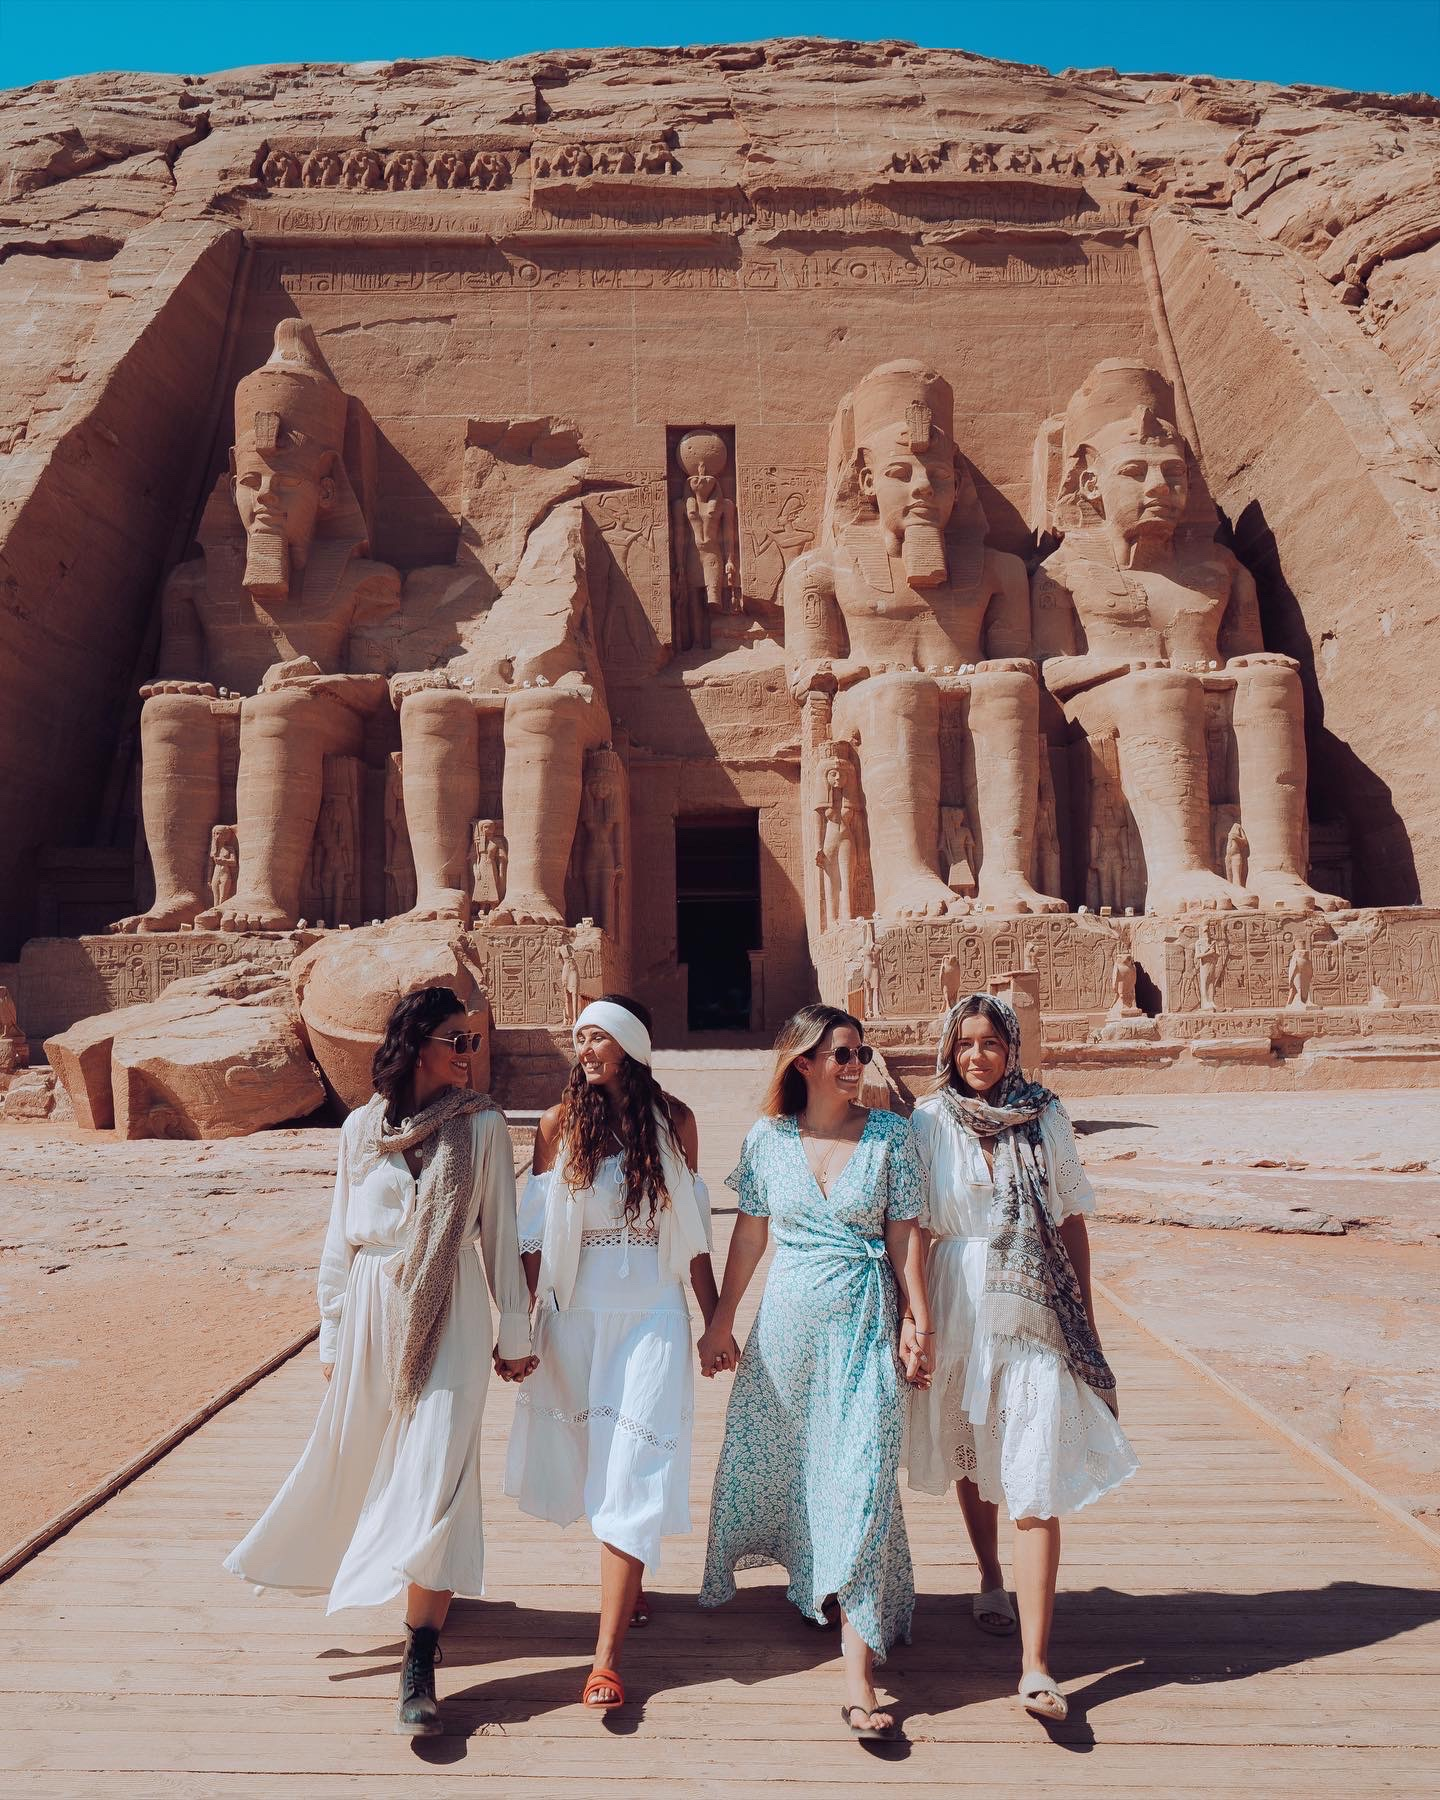 Lisa Homsy, Exporerssaurus, Mel Vandersluis, and Haylsa in Egypt on a sponsored trip through Instagram